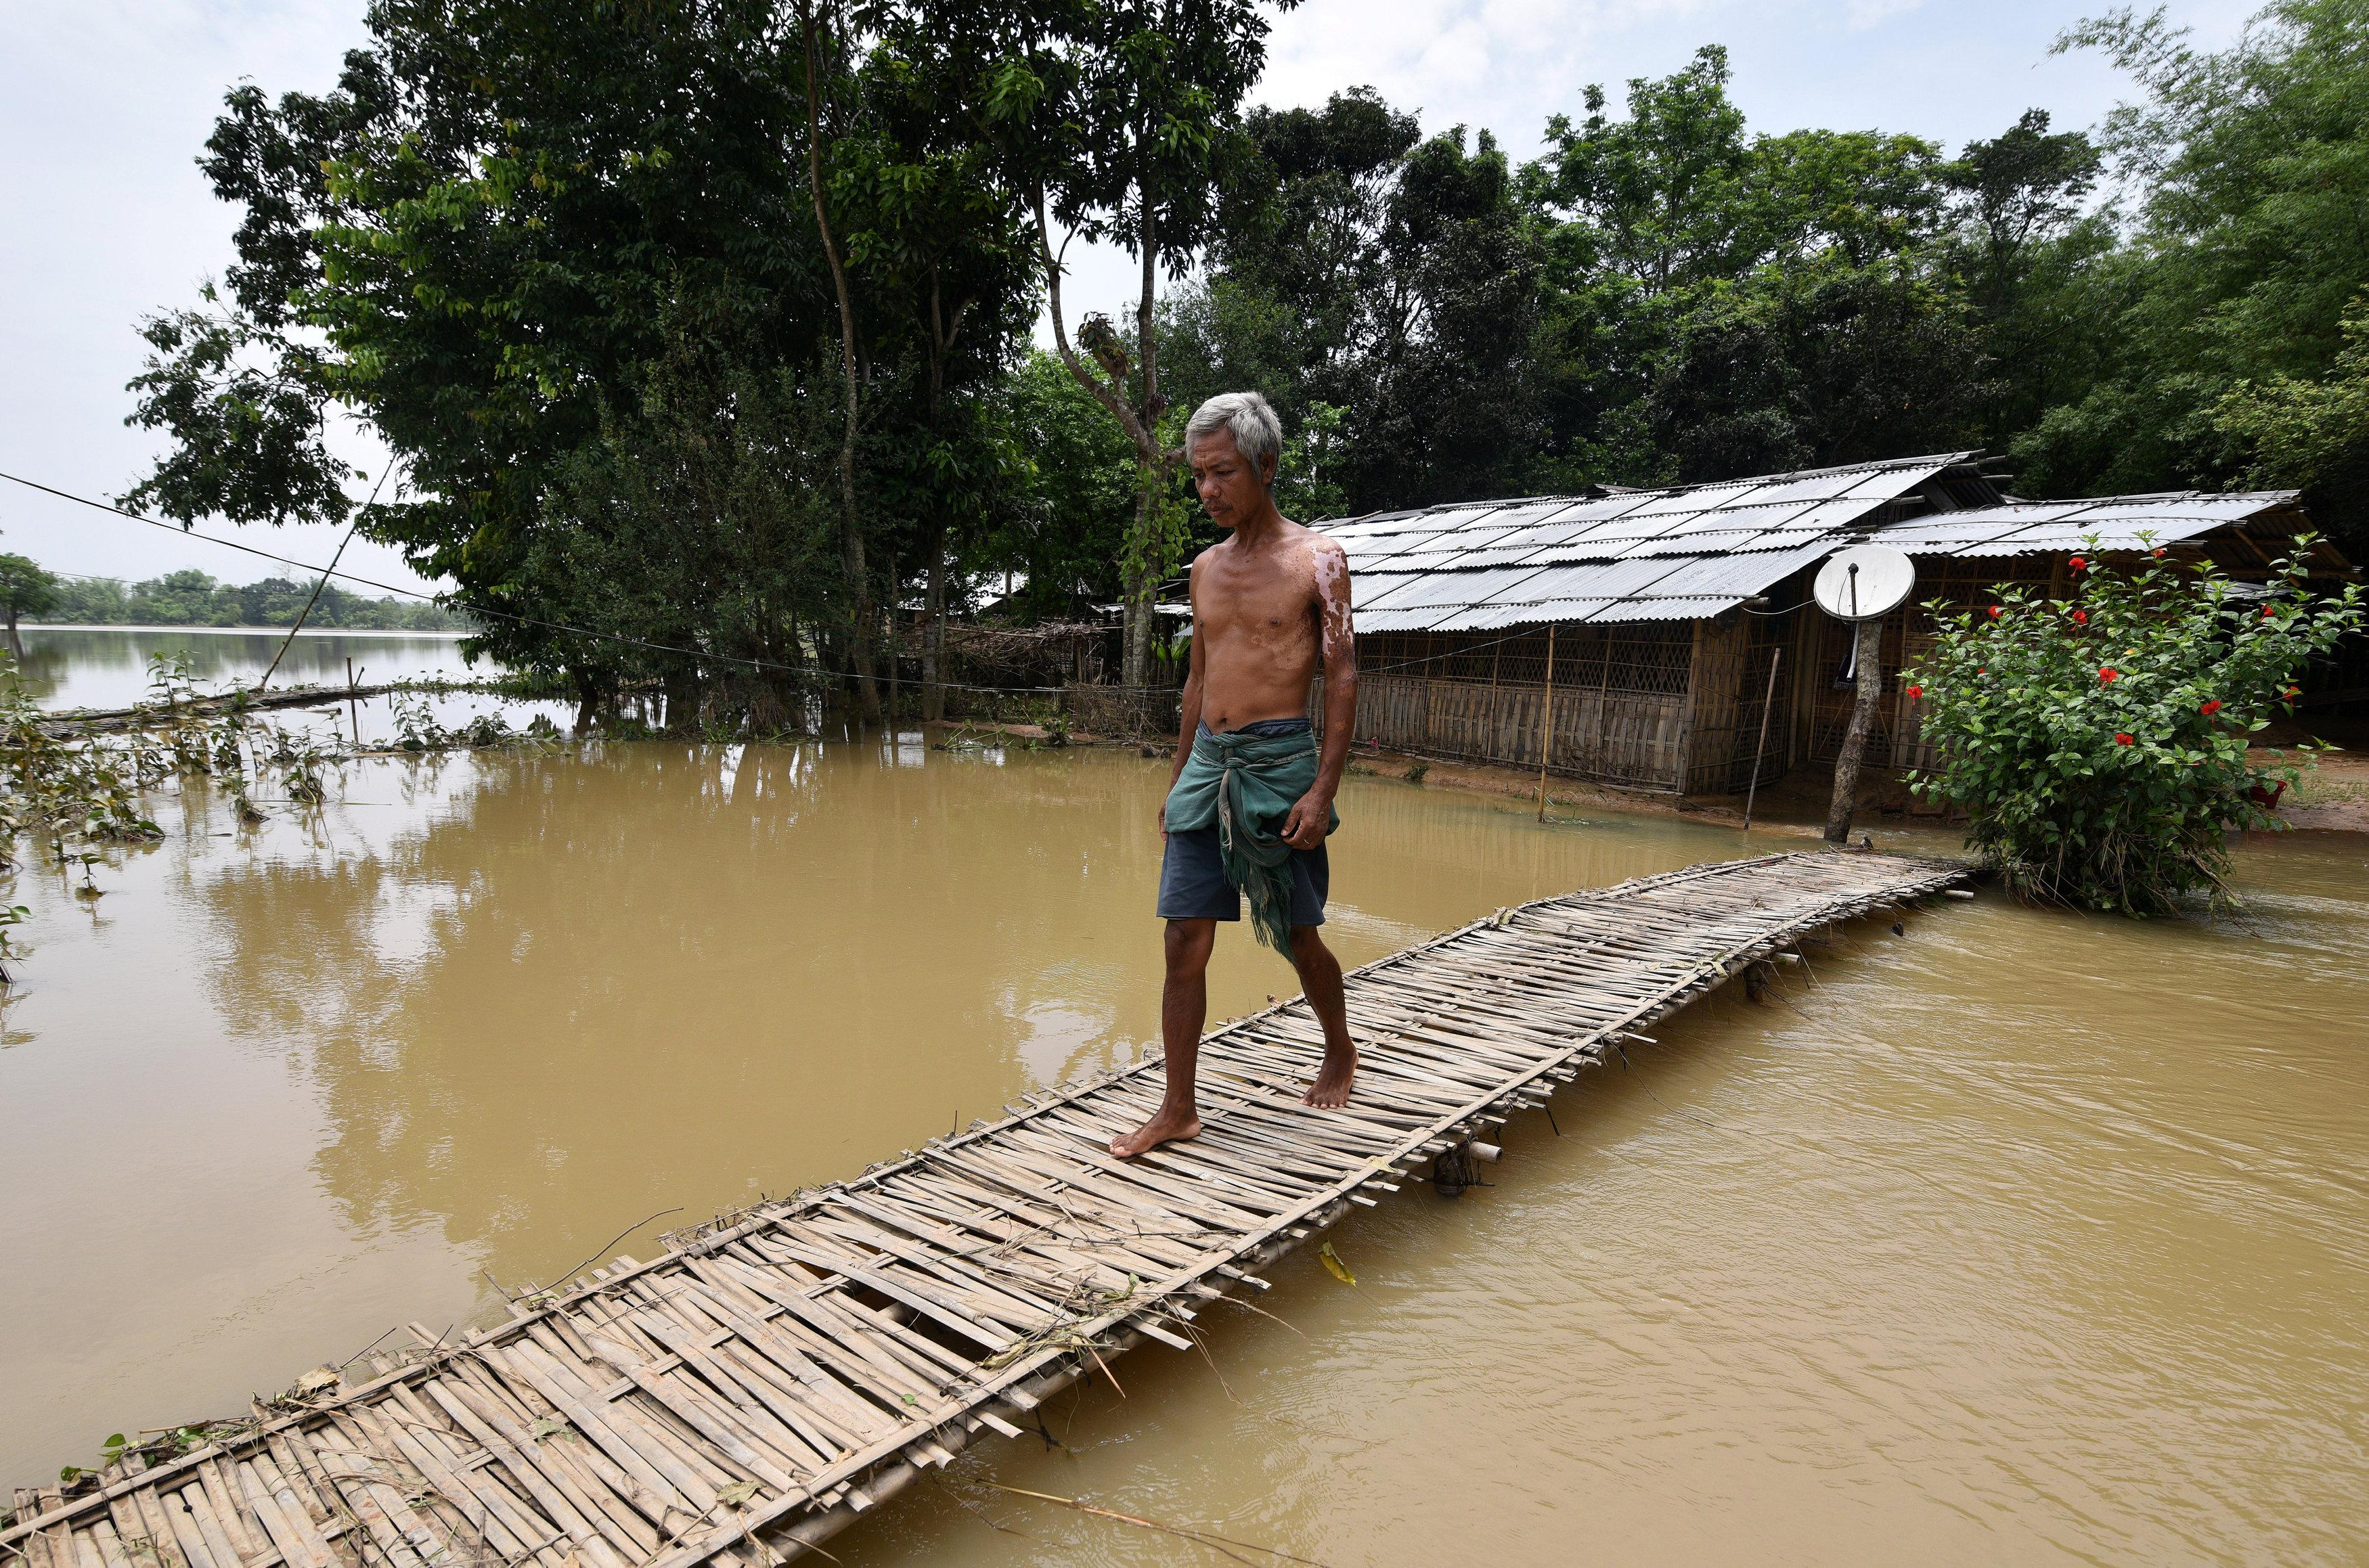 A man uses a makeshift bamboo bridge to cross a flooded area at a village in Nagaon district, in the northeastern state of Assam, India, June 19, 2018. Anuwar Hazarika